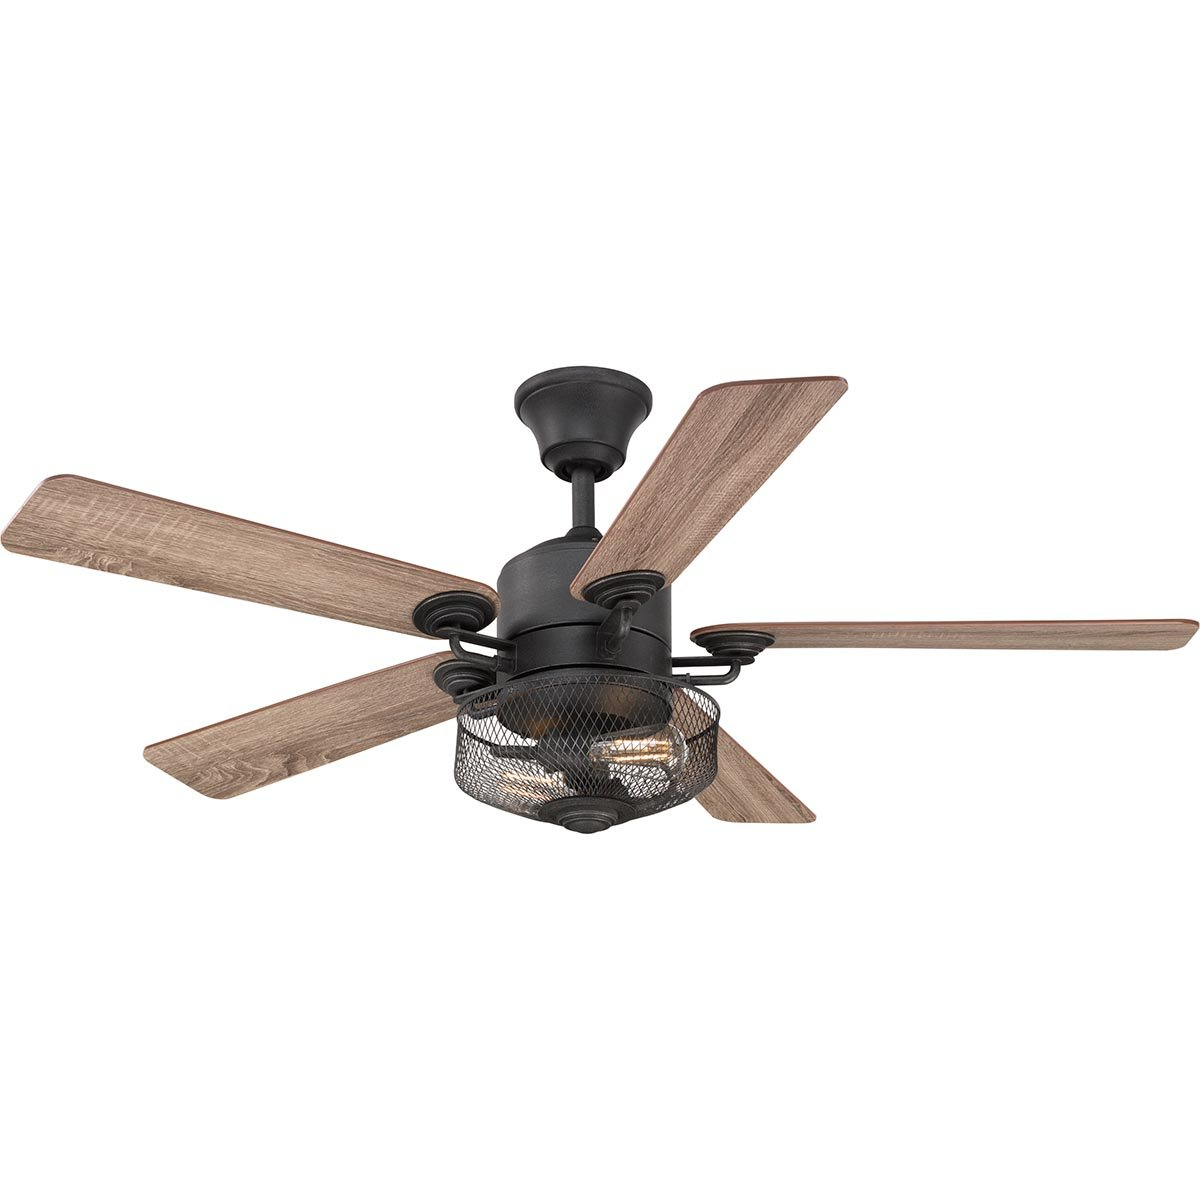 "Wilburton 5 Blade Ceiling Fans With Remote Within Well Known 54"" Clauson 5 Blade Ceiling Fan With Remote (View 3 of 20)"